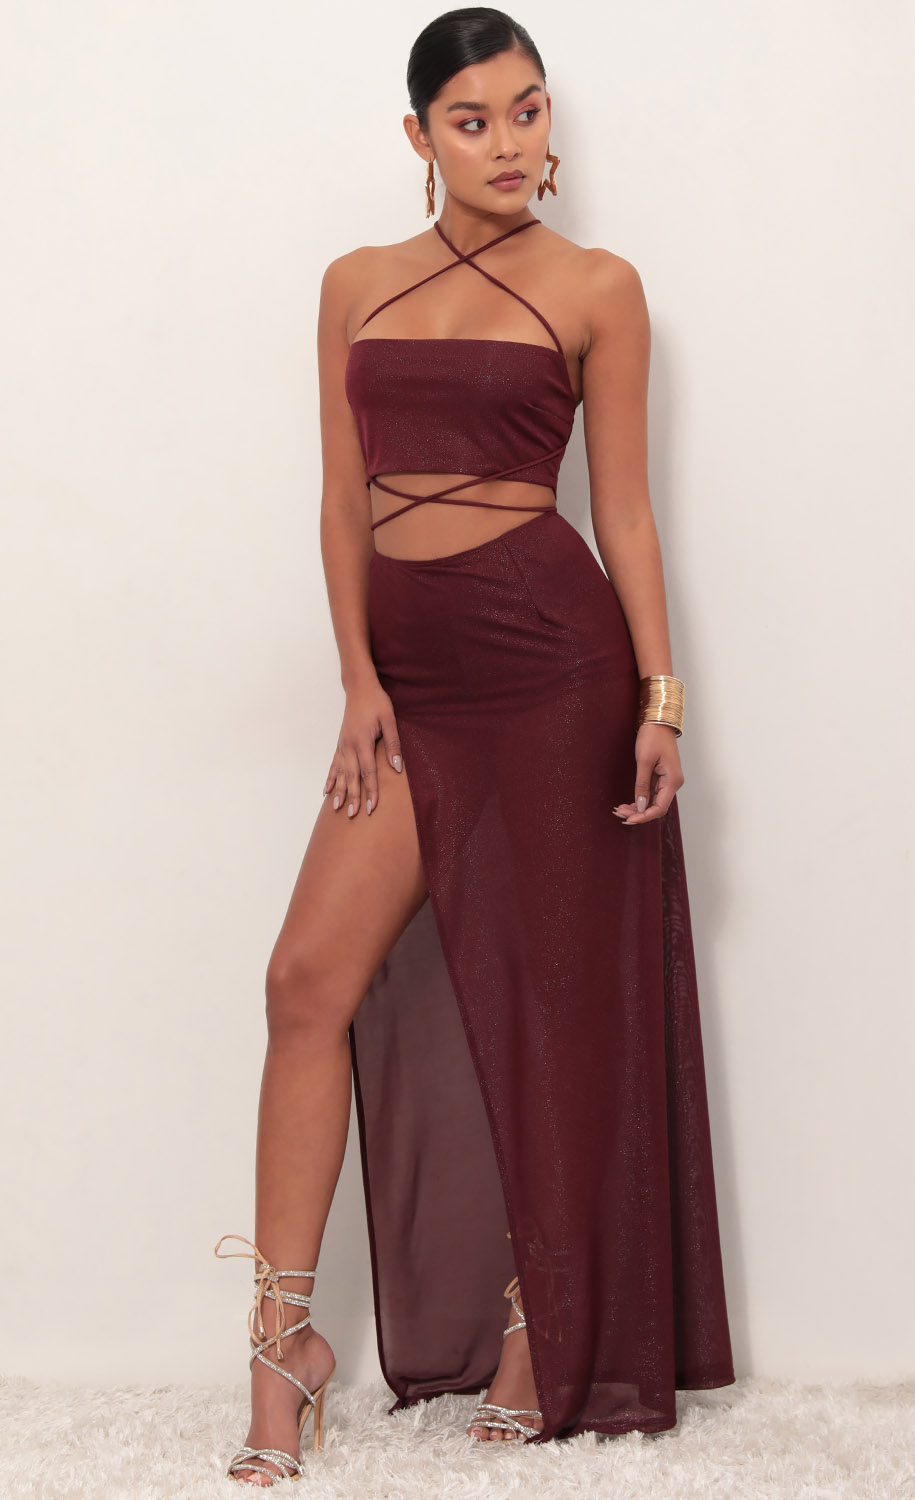 Boho Shimmer Mesh Maxi Set in Burgundy